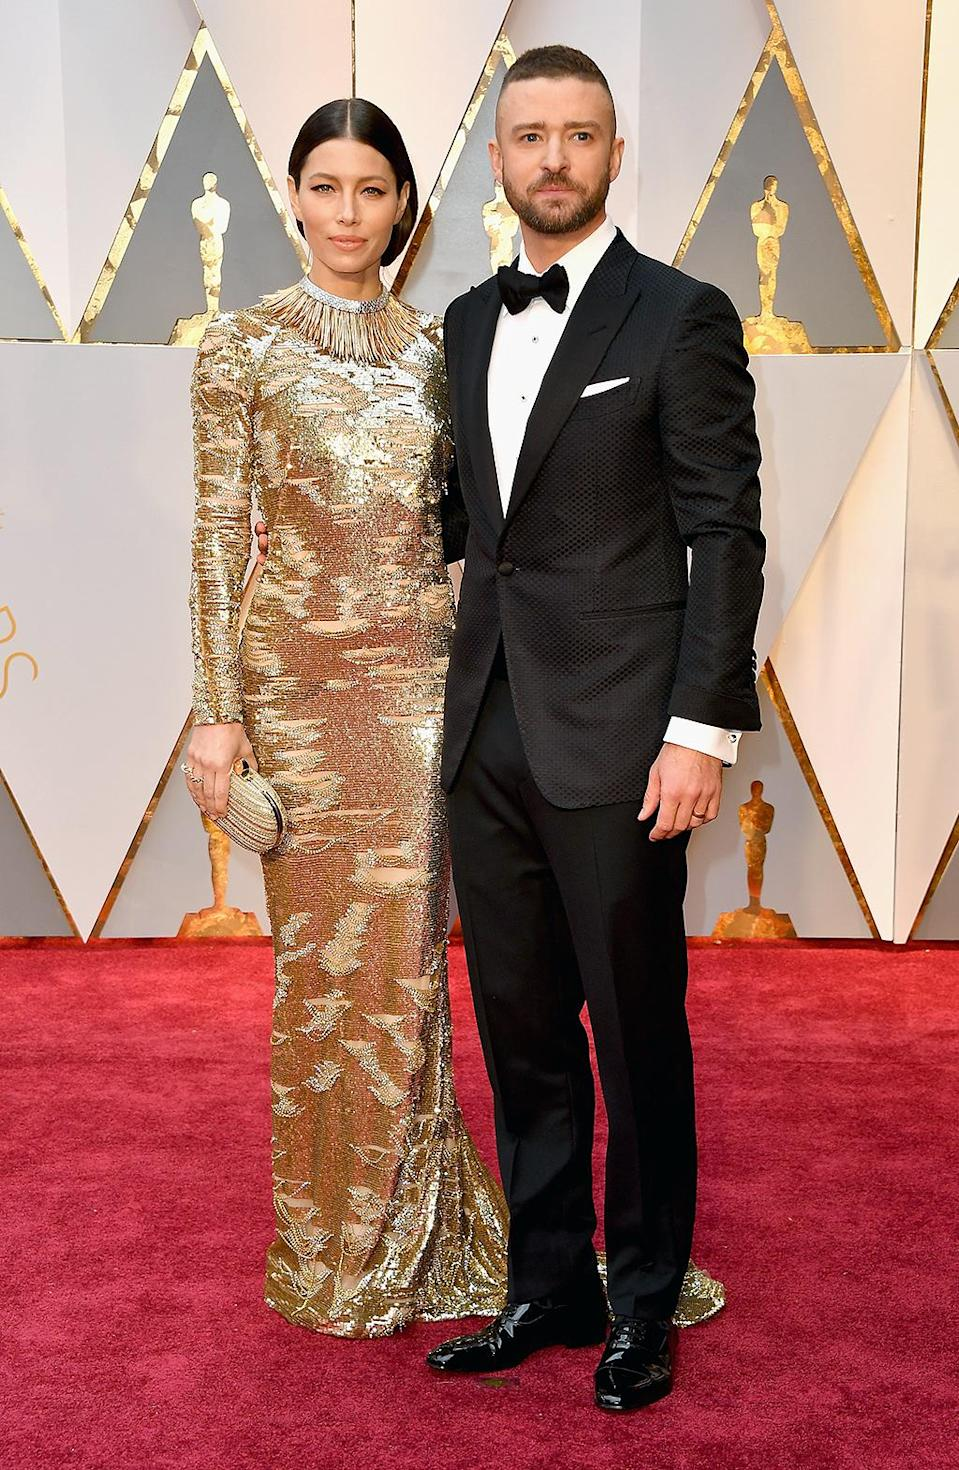 <p>Jessica Biel and Justin Timberlake attend the 89th Annual Academy Awards at Hollywood & Highland Center on February 26, 2017 in Hollywood, California. (Photo by Steve Granitz/WireImage) </p>